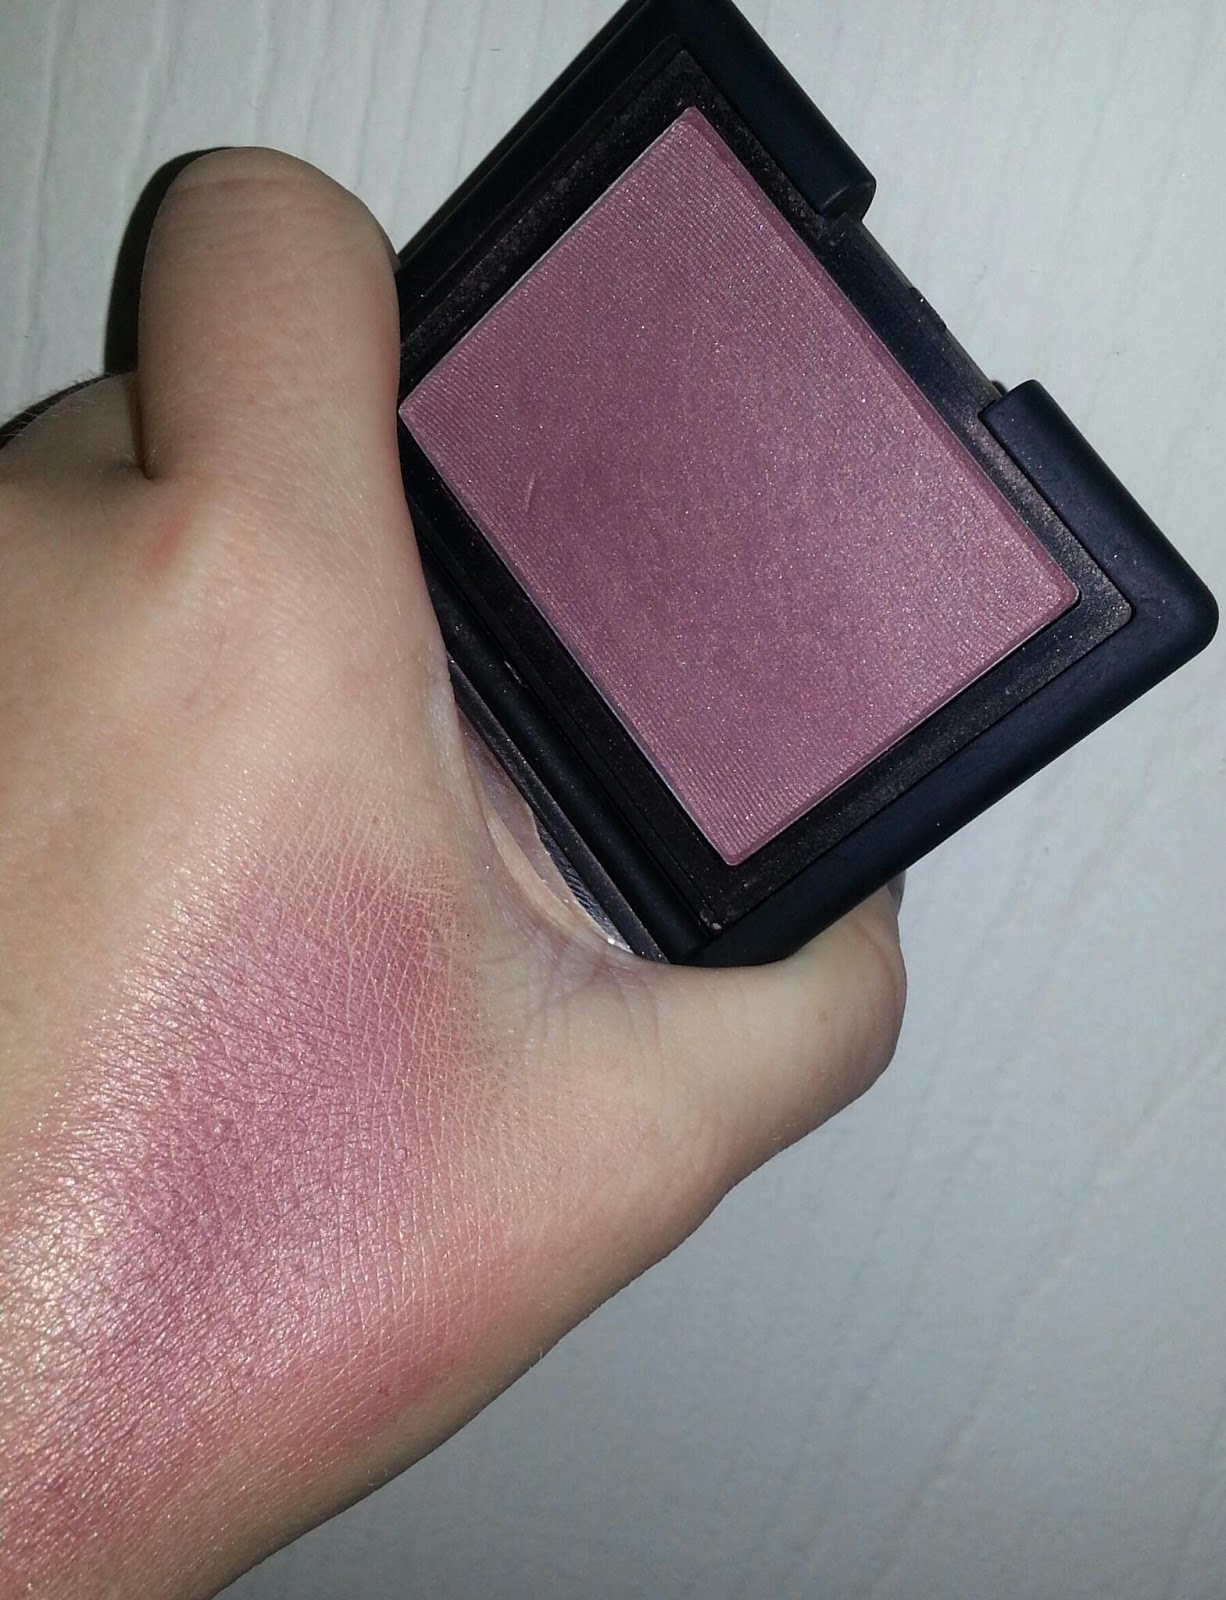 Erika Loves Beauty : NARS Sin Blush Photos&Cheek Swatch!